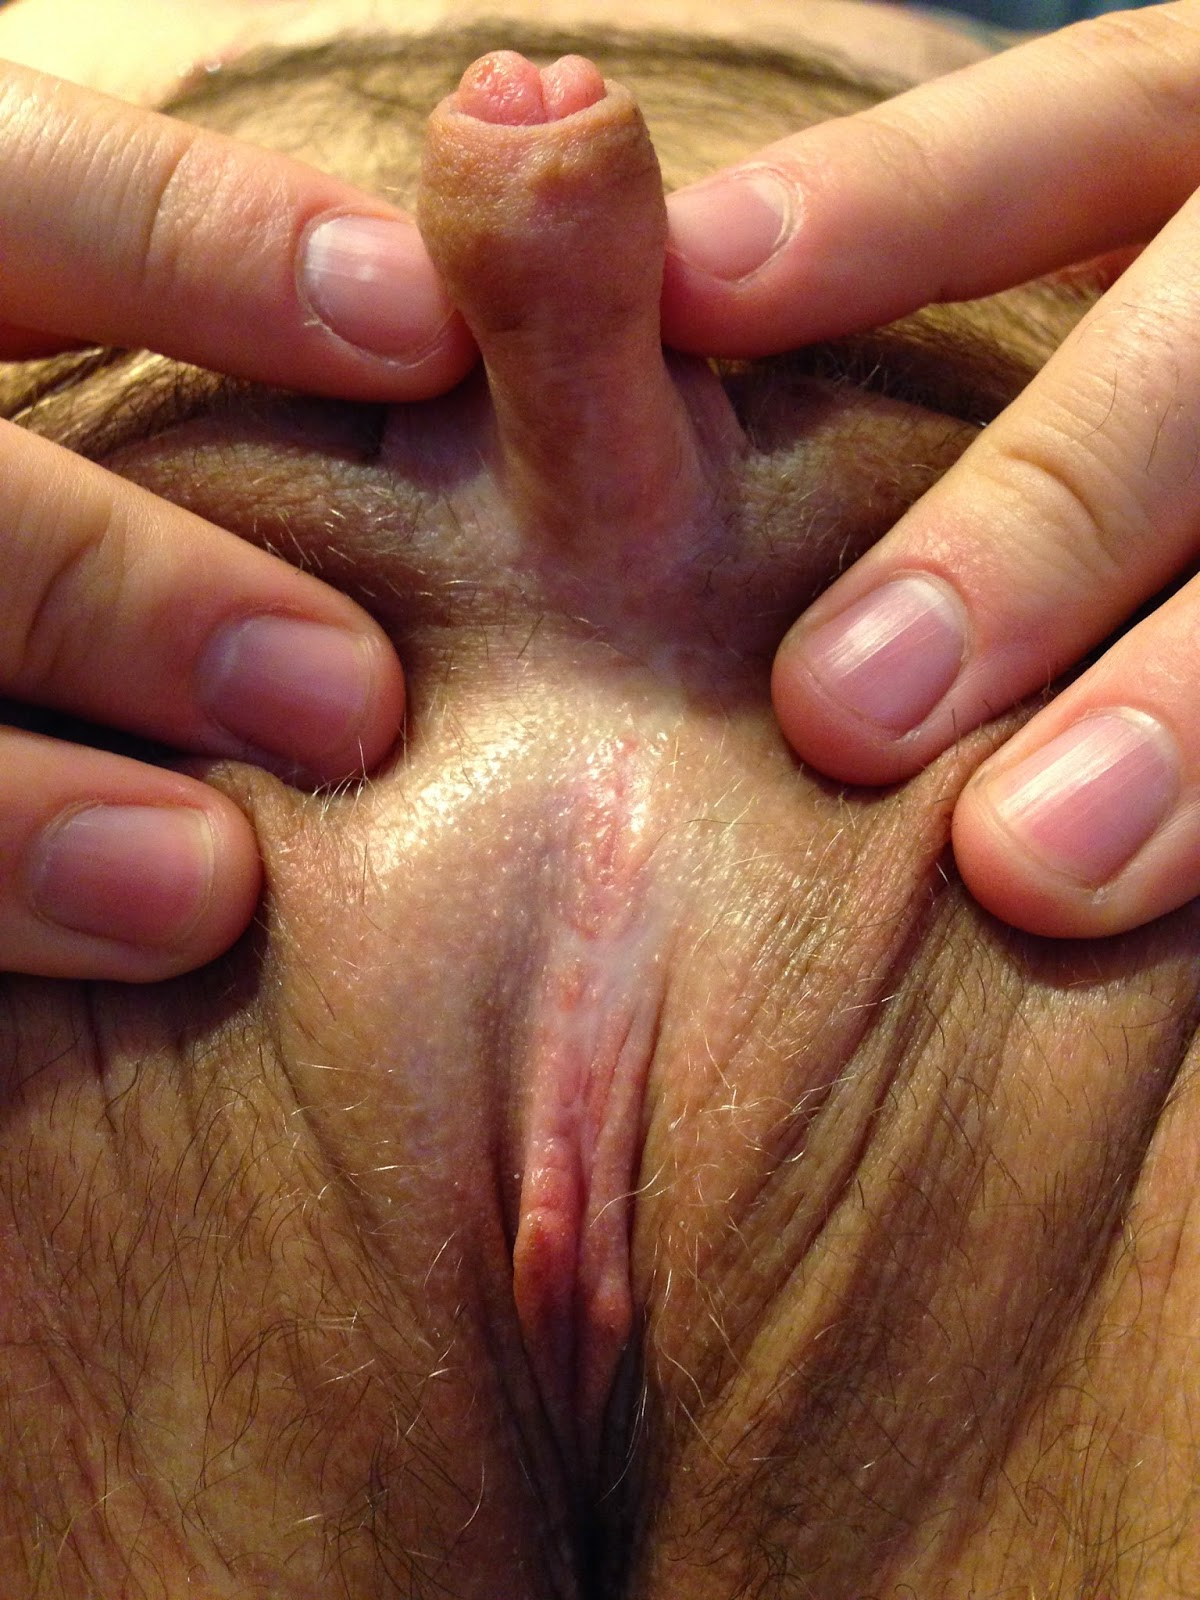 transsexual with the biggest dick